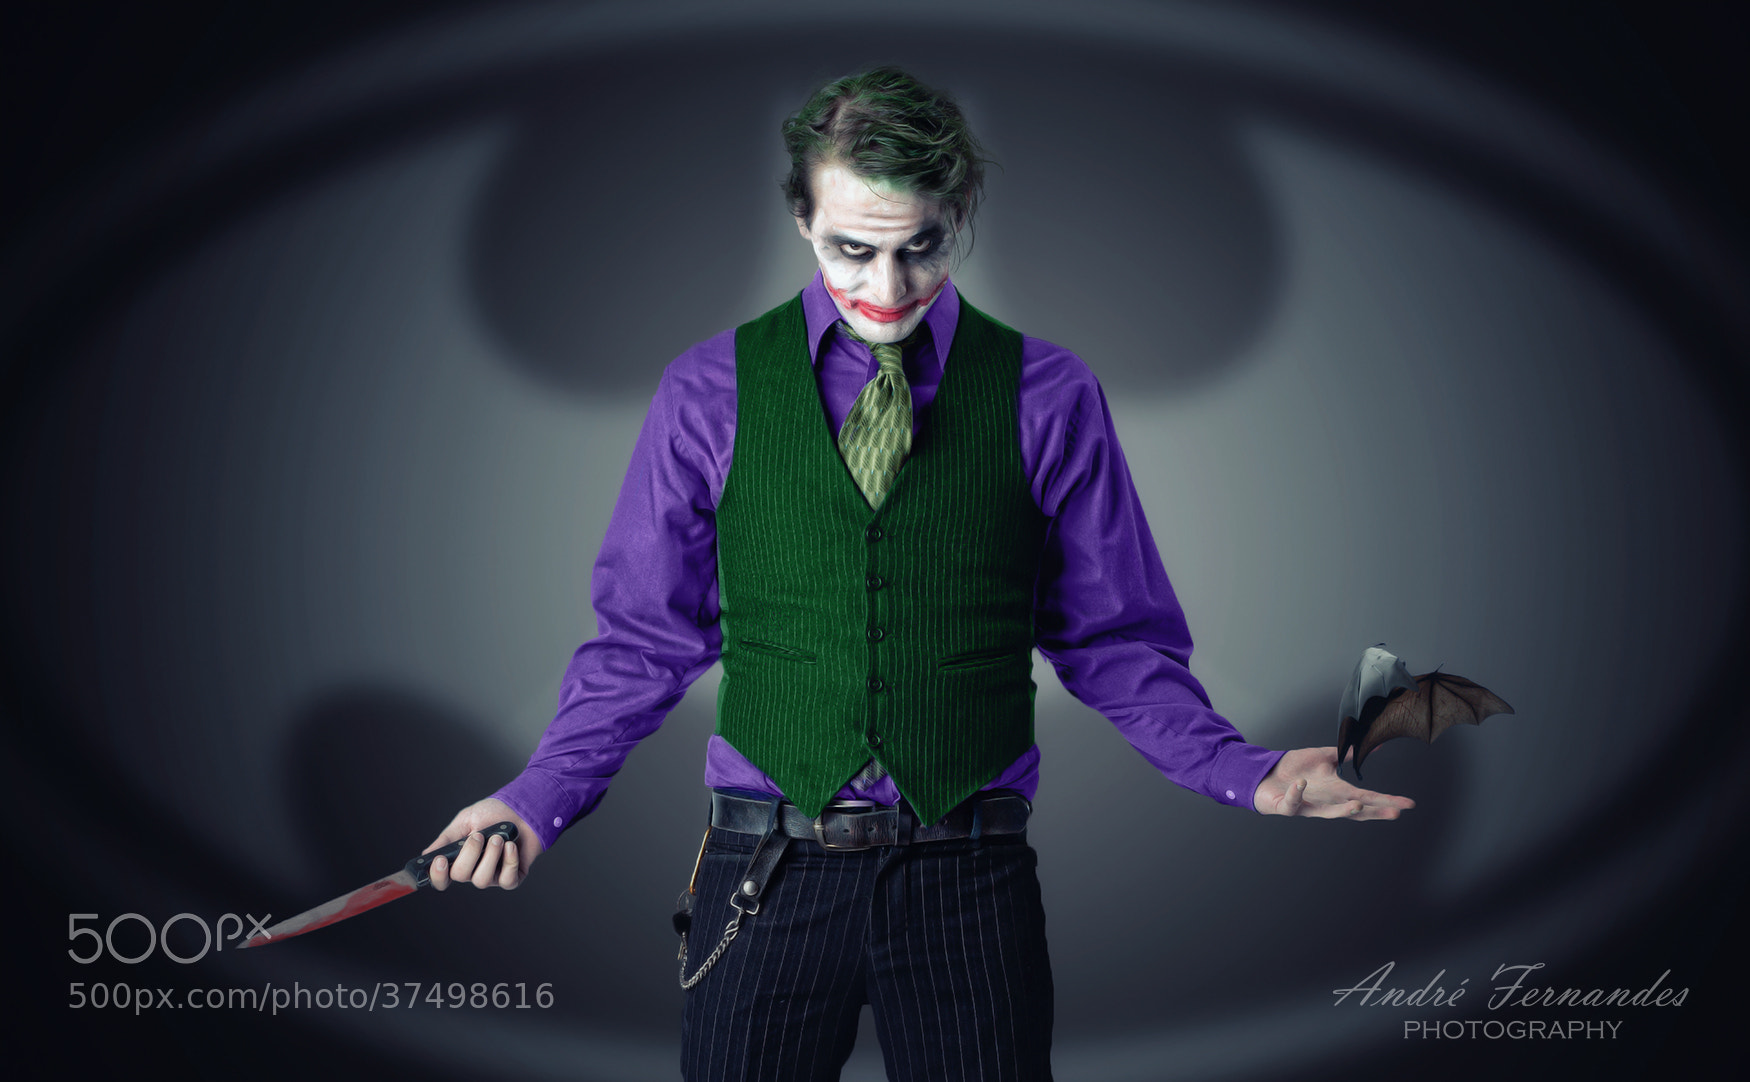 Photograph The Joker by André Fernandes on 500px